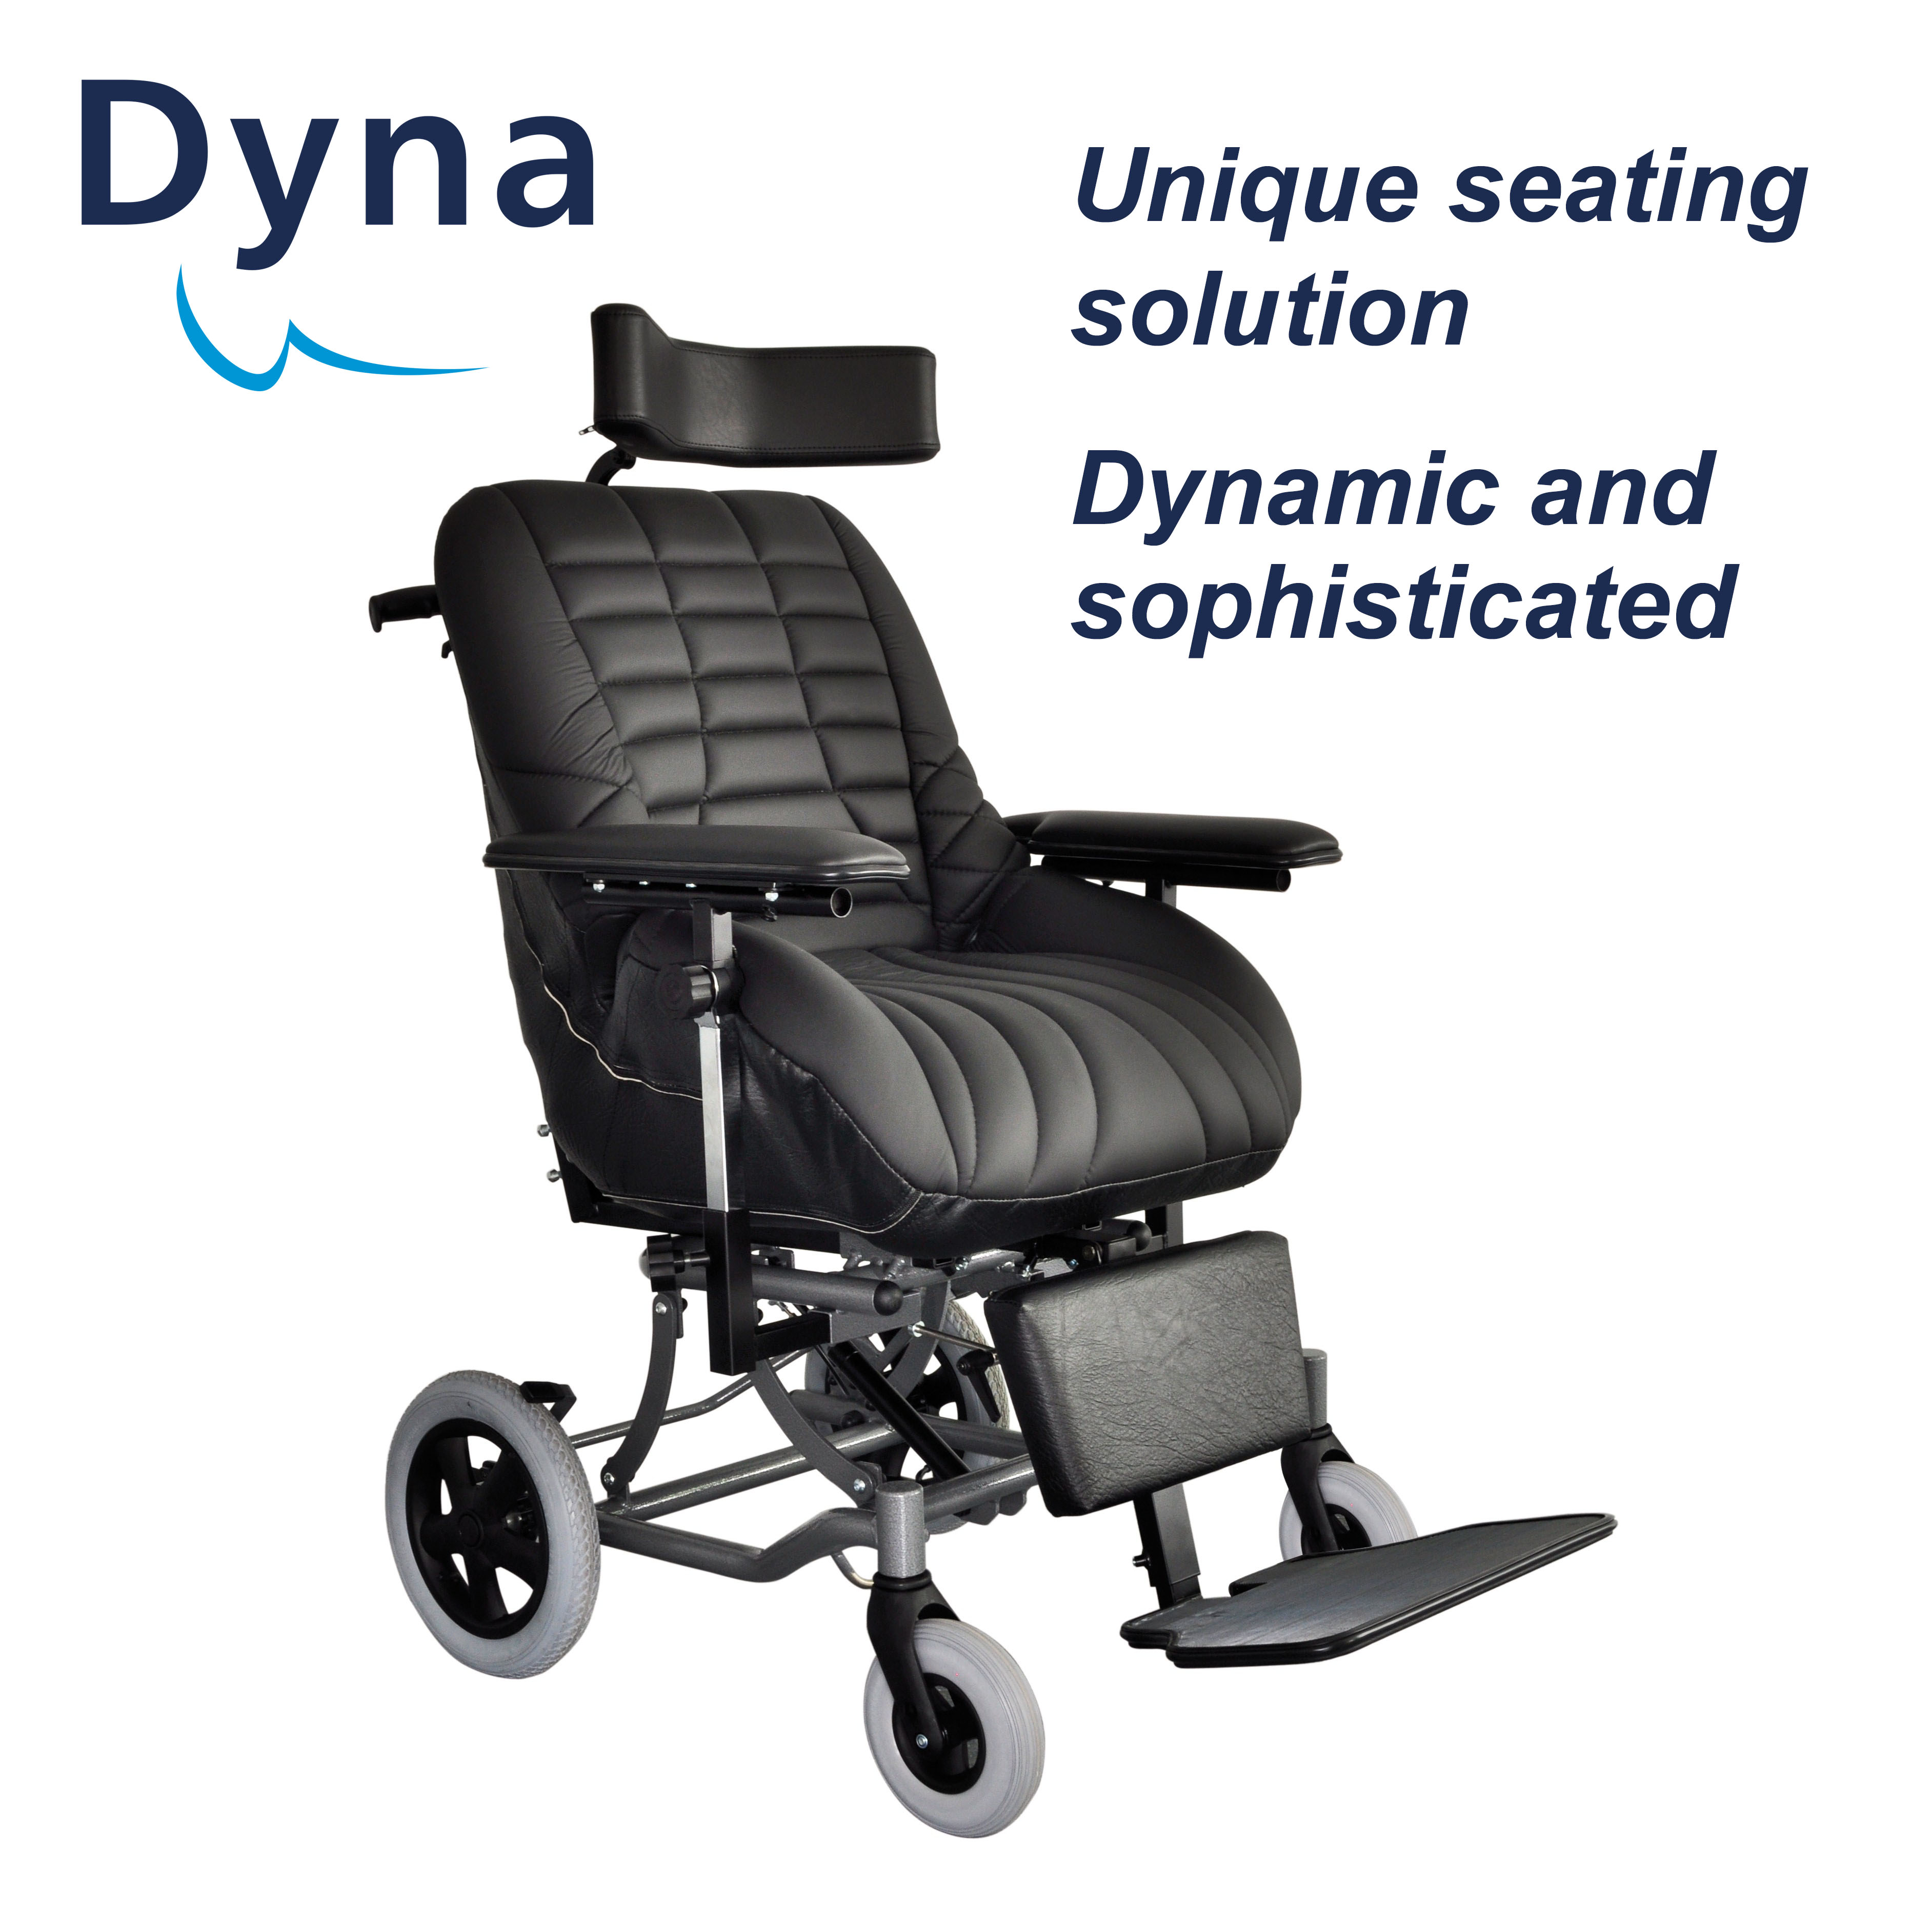 dynaproducts2 (2)